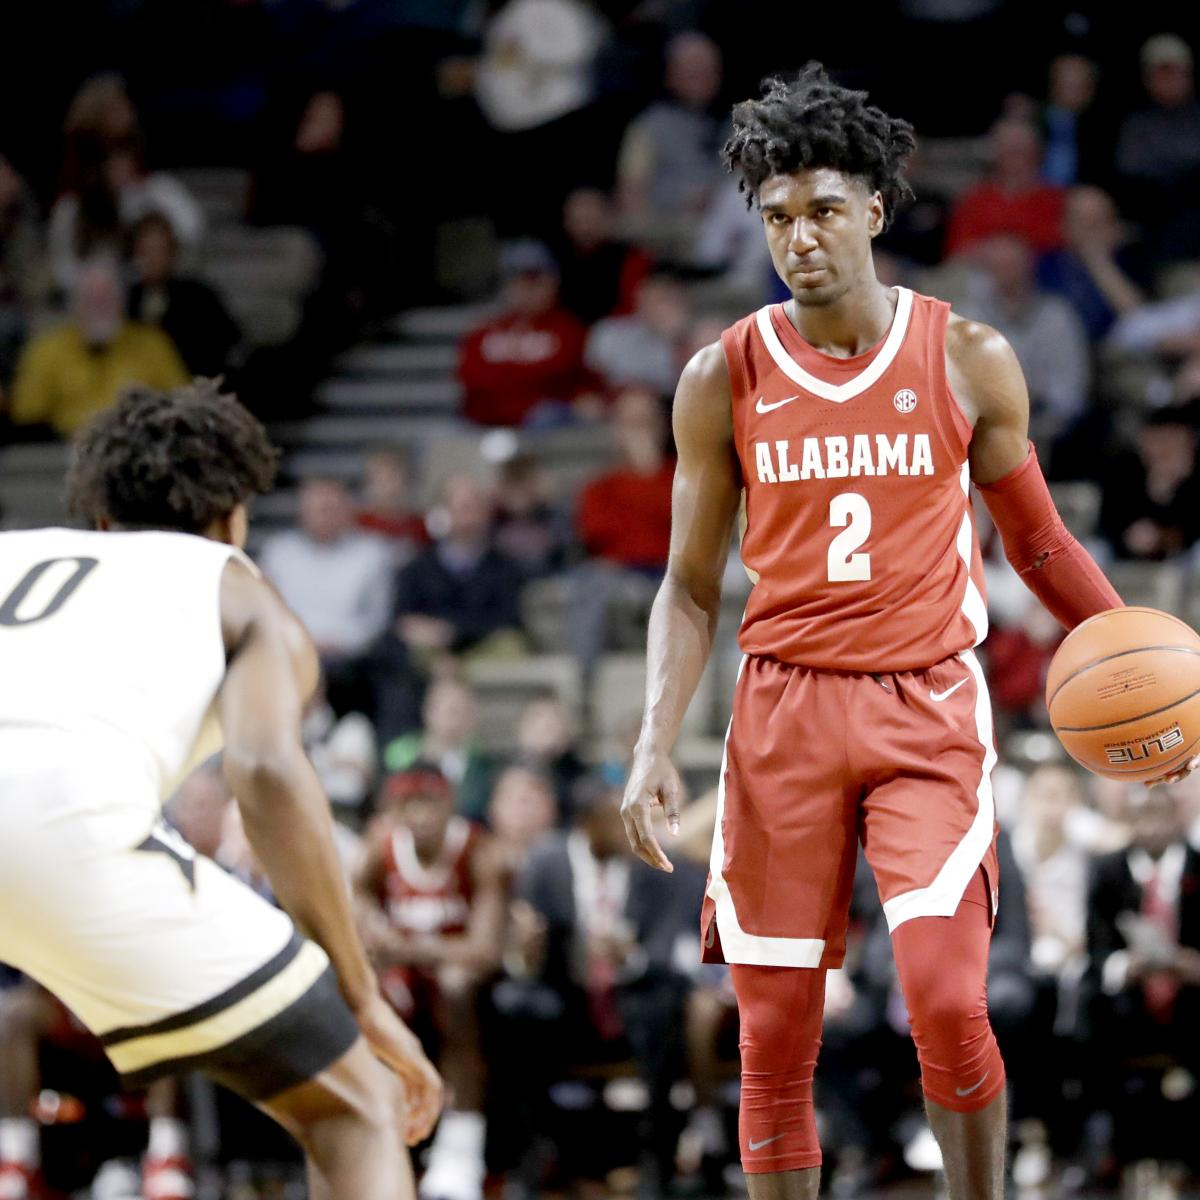 2020 NBA Draft Buzz: Emerging Point Guards and Latest Rumors